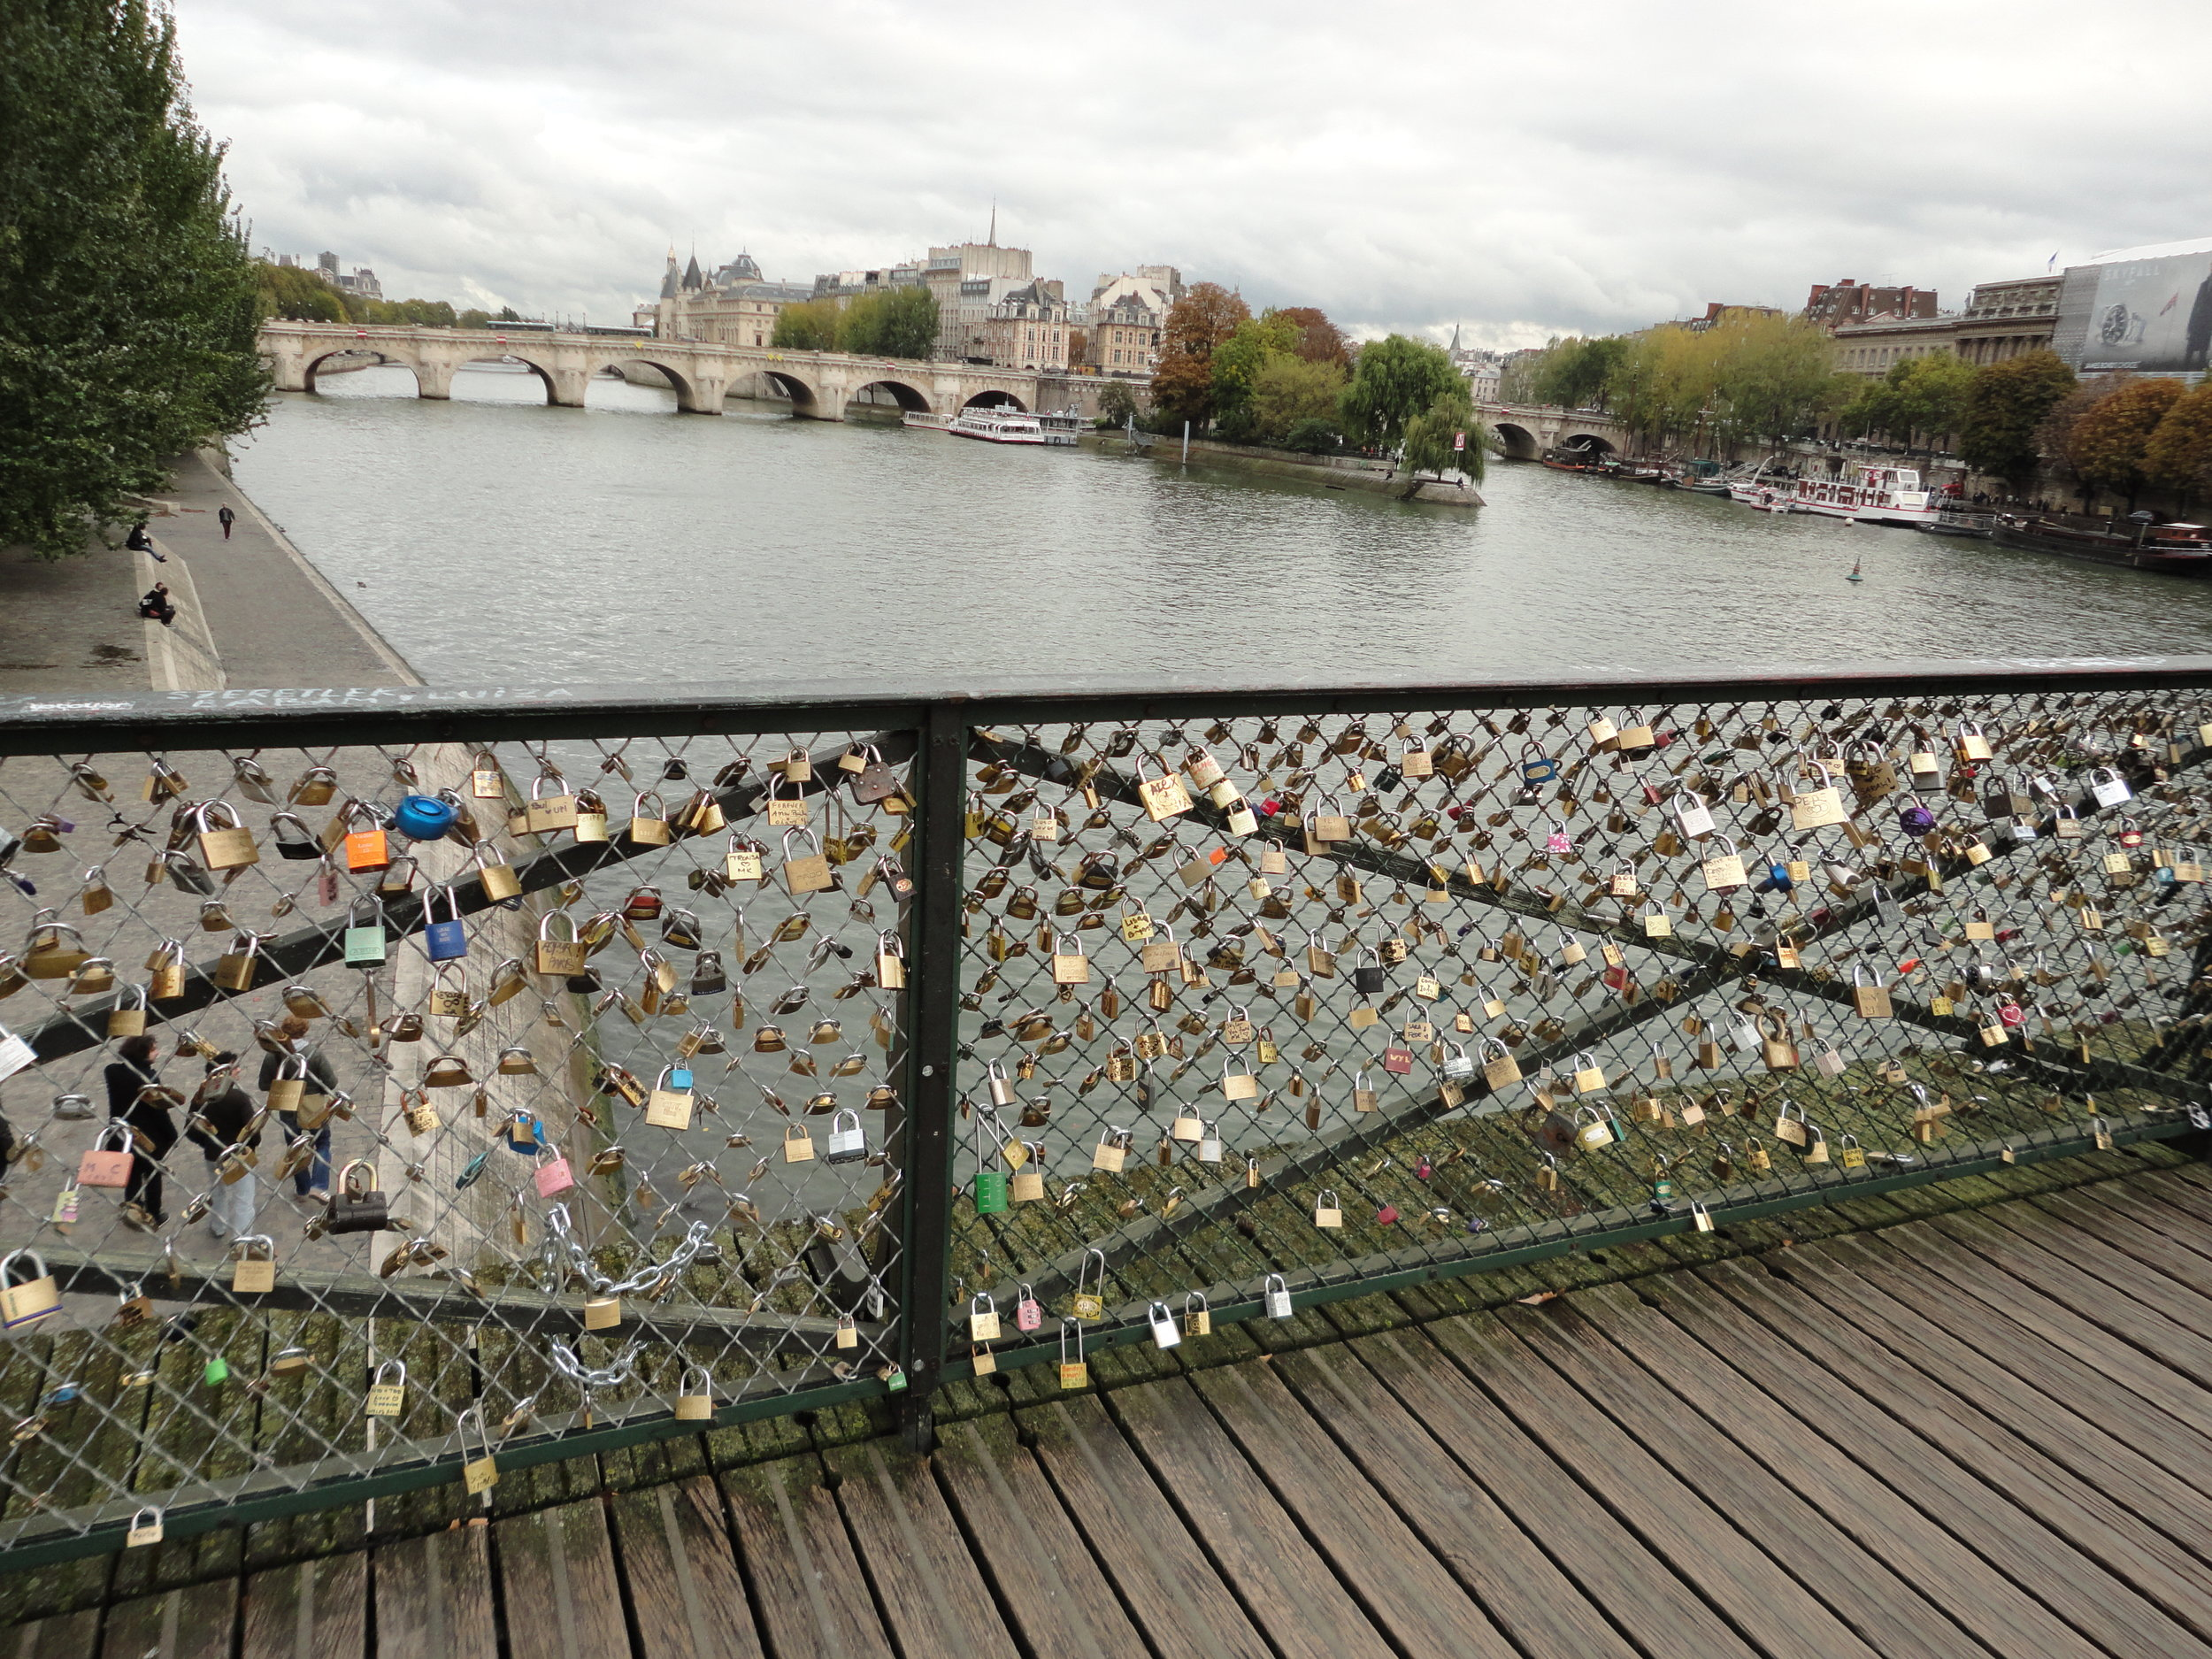 PONT DES ARTS - Love Lock Bridge